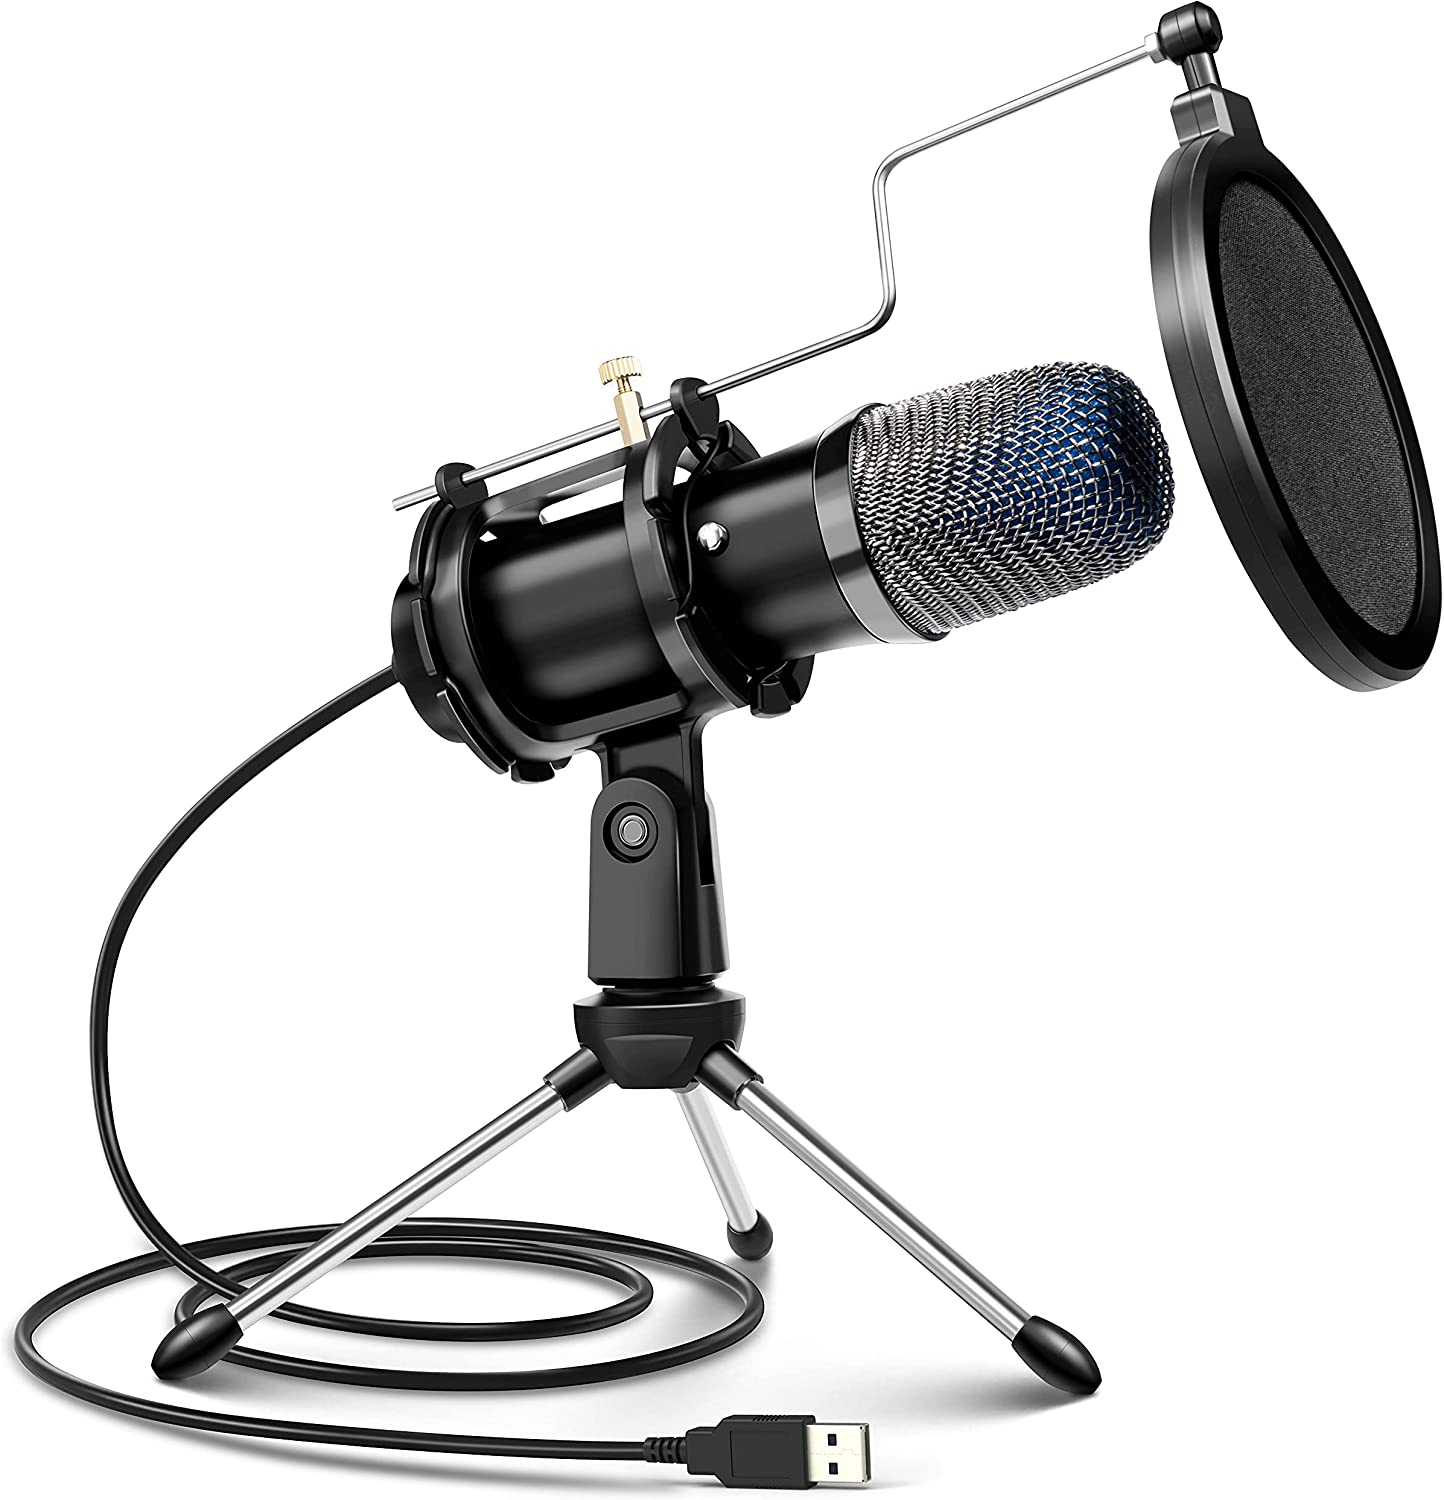 USB Microphone for Computer, Condenser Microphone for PC with Tripod Stand, Pop Filter, Shock Mount, for Gaming, Streaming, Podcasting, YouTube, Skype